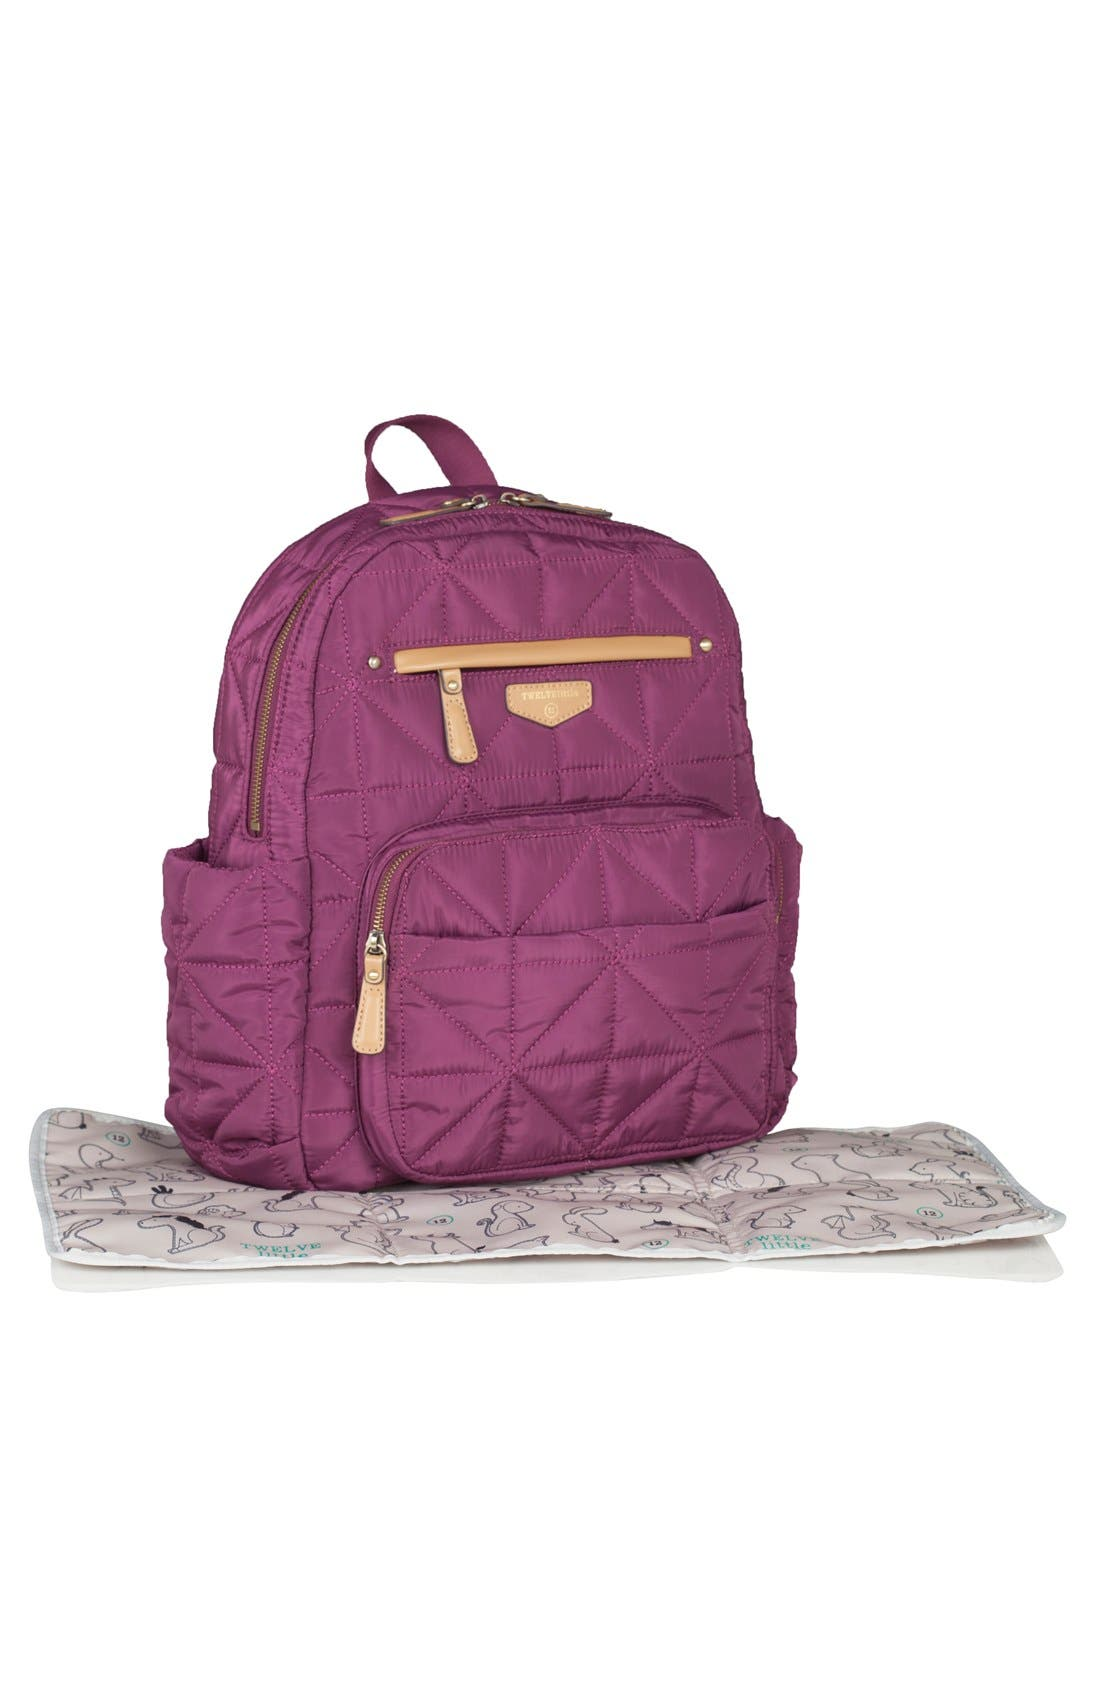 Quilted Water Resistant Nylon Diaper Backpack,                             Alternate thumbnail 3, color,                             Plum